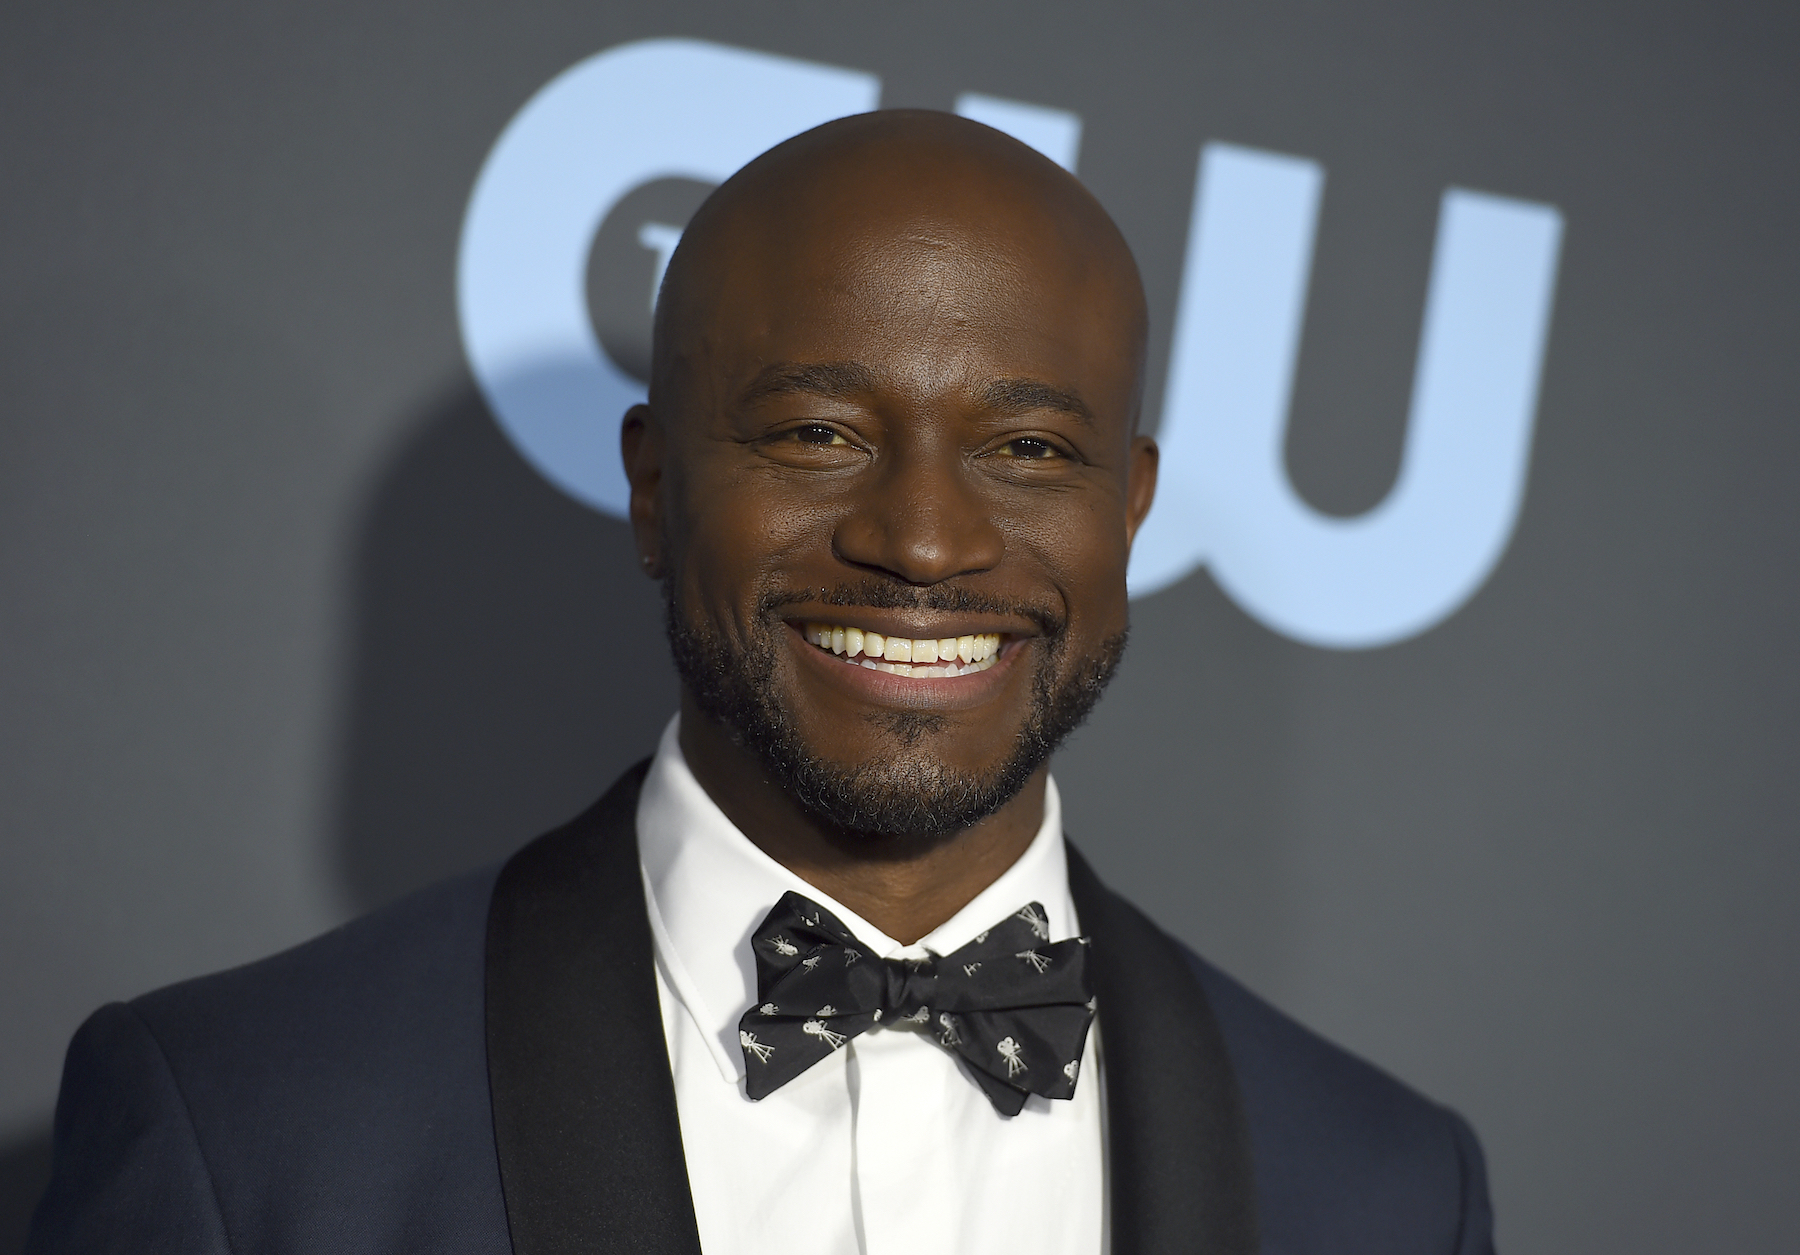 <div class='meta'><div class='origin-logo' data-origin='AP'></div><span class='caption-text' data-credit='Jordan Strauss/Invision/AP'>Taye Diggs arrives at the 24th annual Critics' Choice Awards on Sunday, Jan. 13, 2019, at the Barker Hangar in Santa Monica, Calif.</span></div>